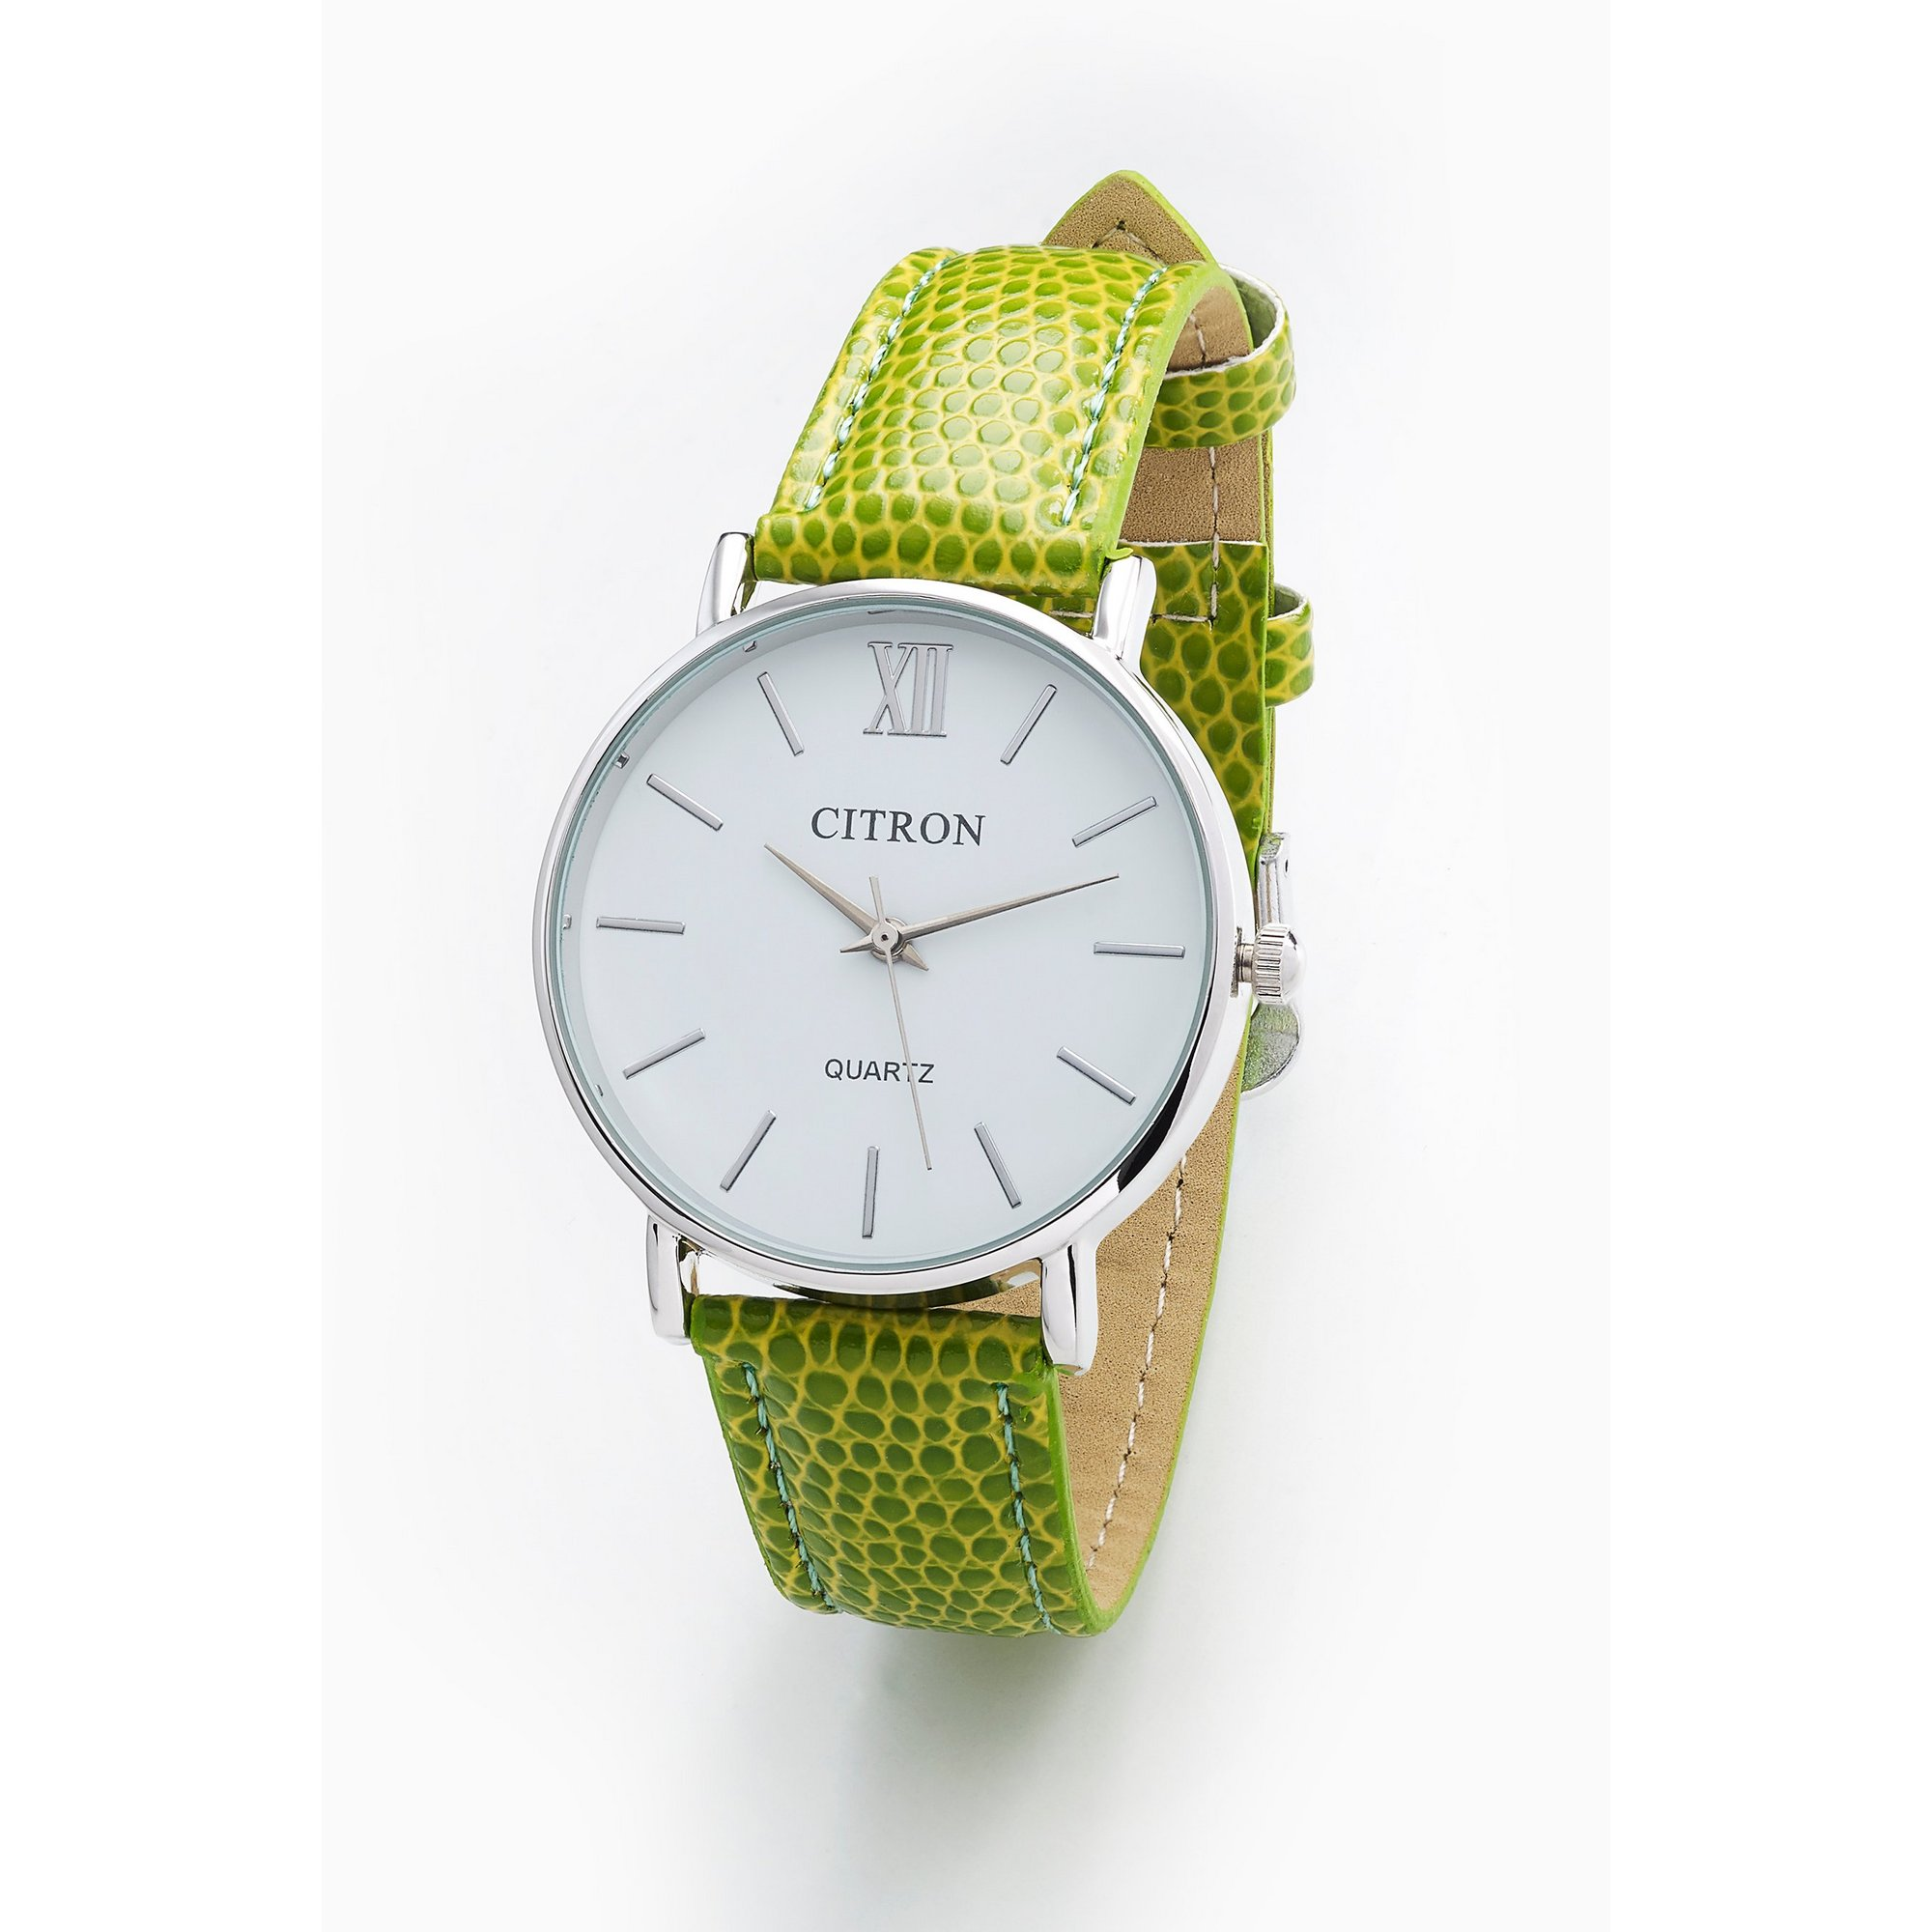 Image of Citron Green Strap Watch